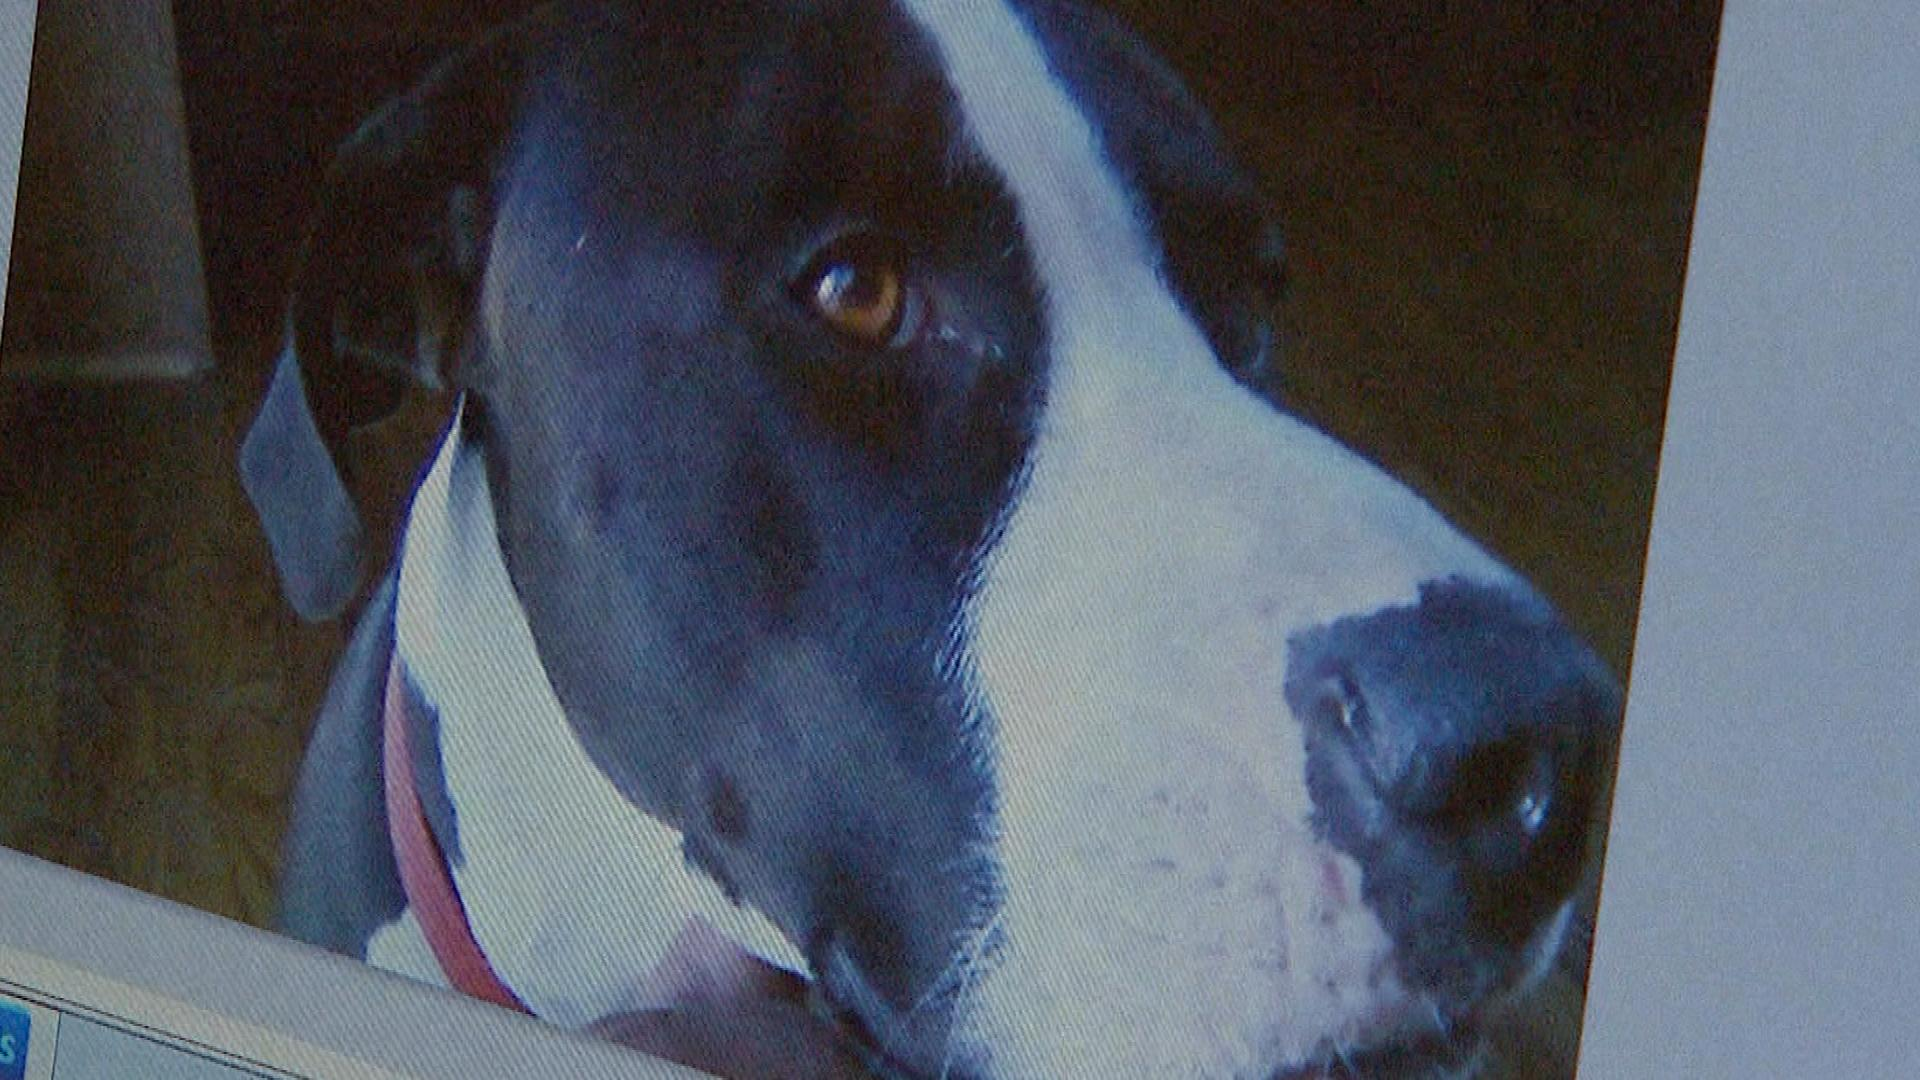 Chloe was shot to death by a Commerce City police officer in November of 2012 (credit: CBS)